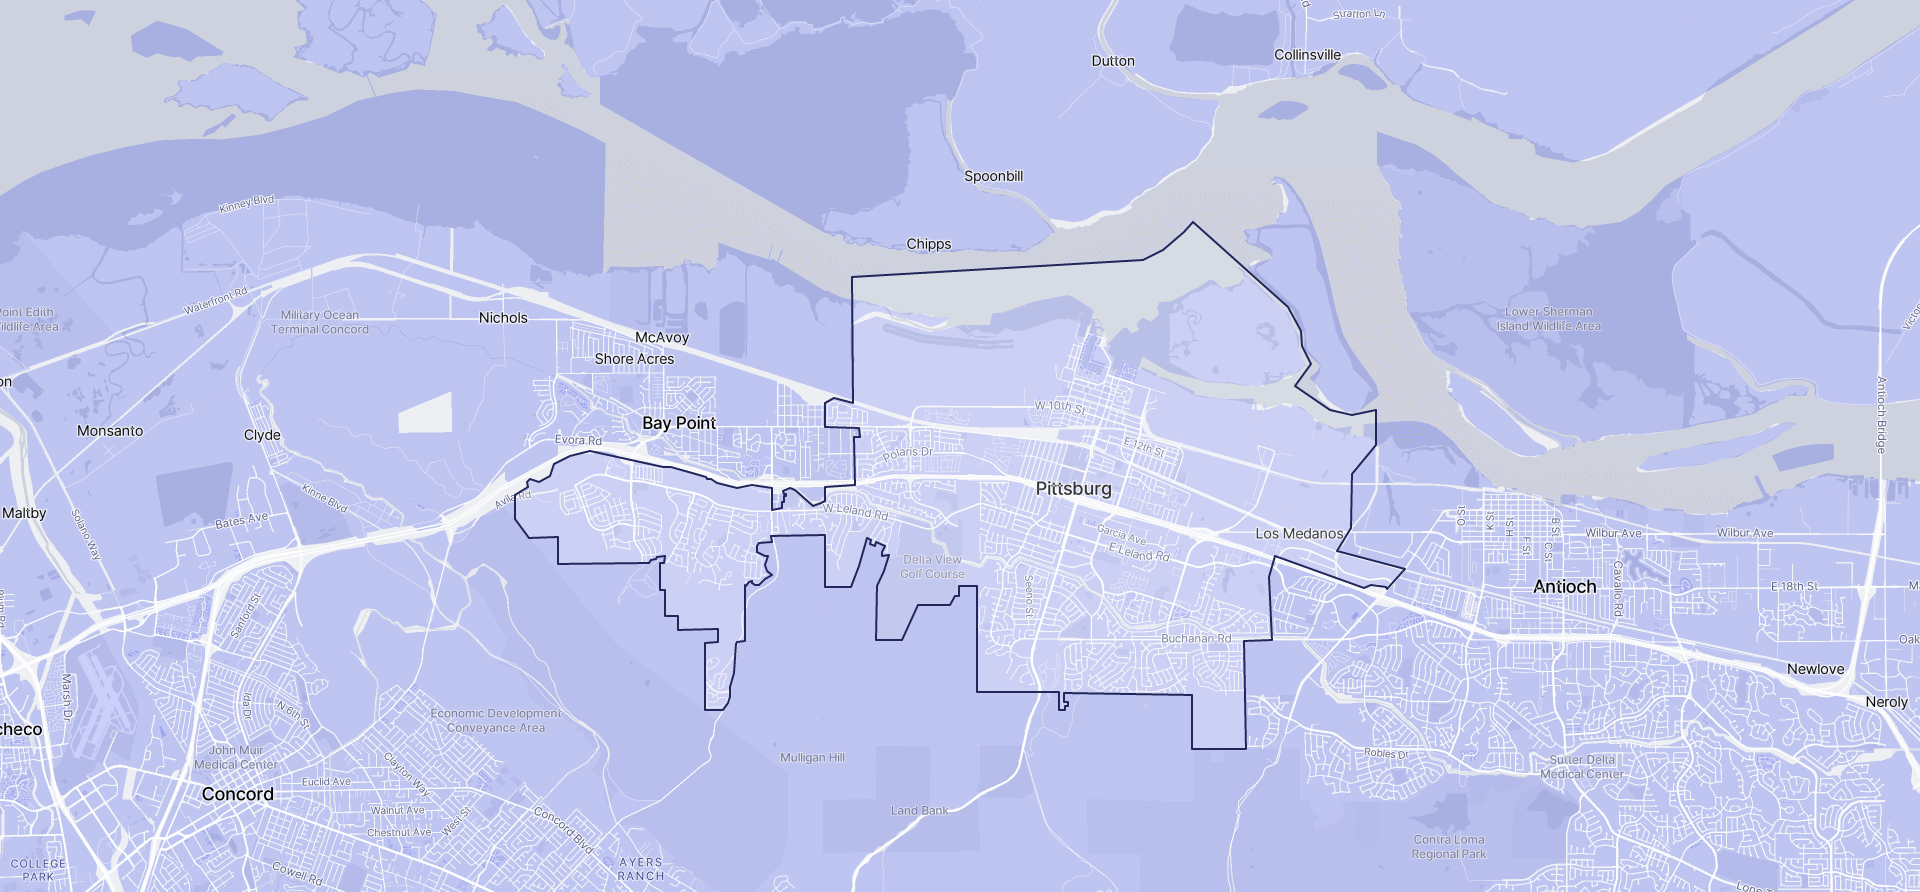 Image of Pittsburg boundaries on a map.